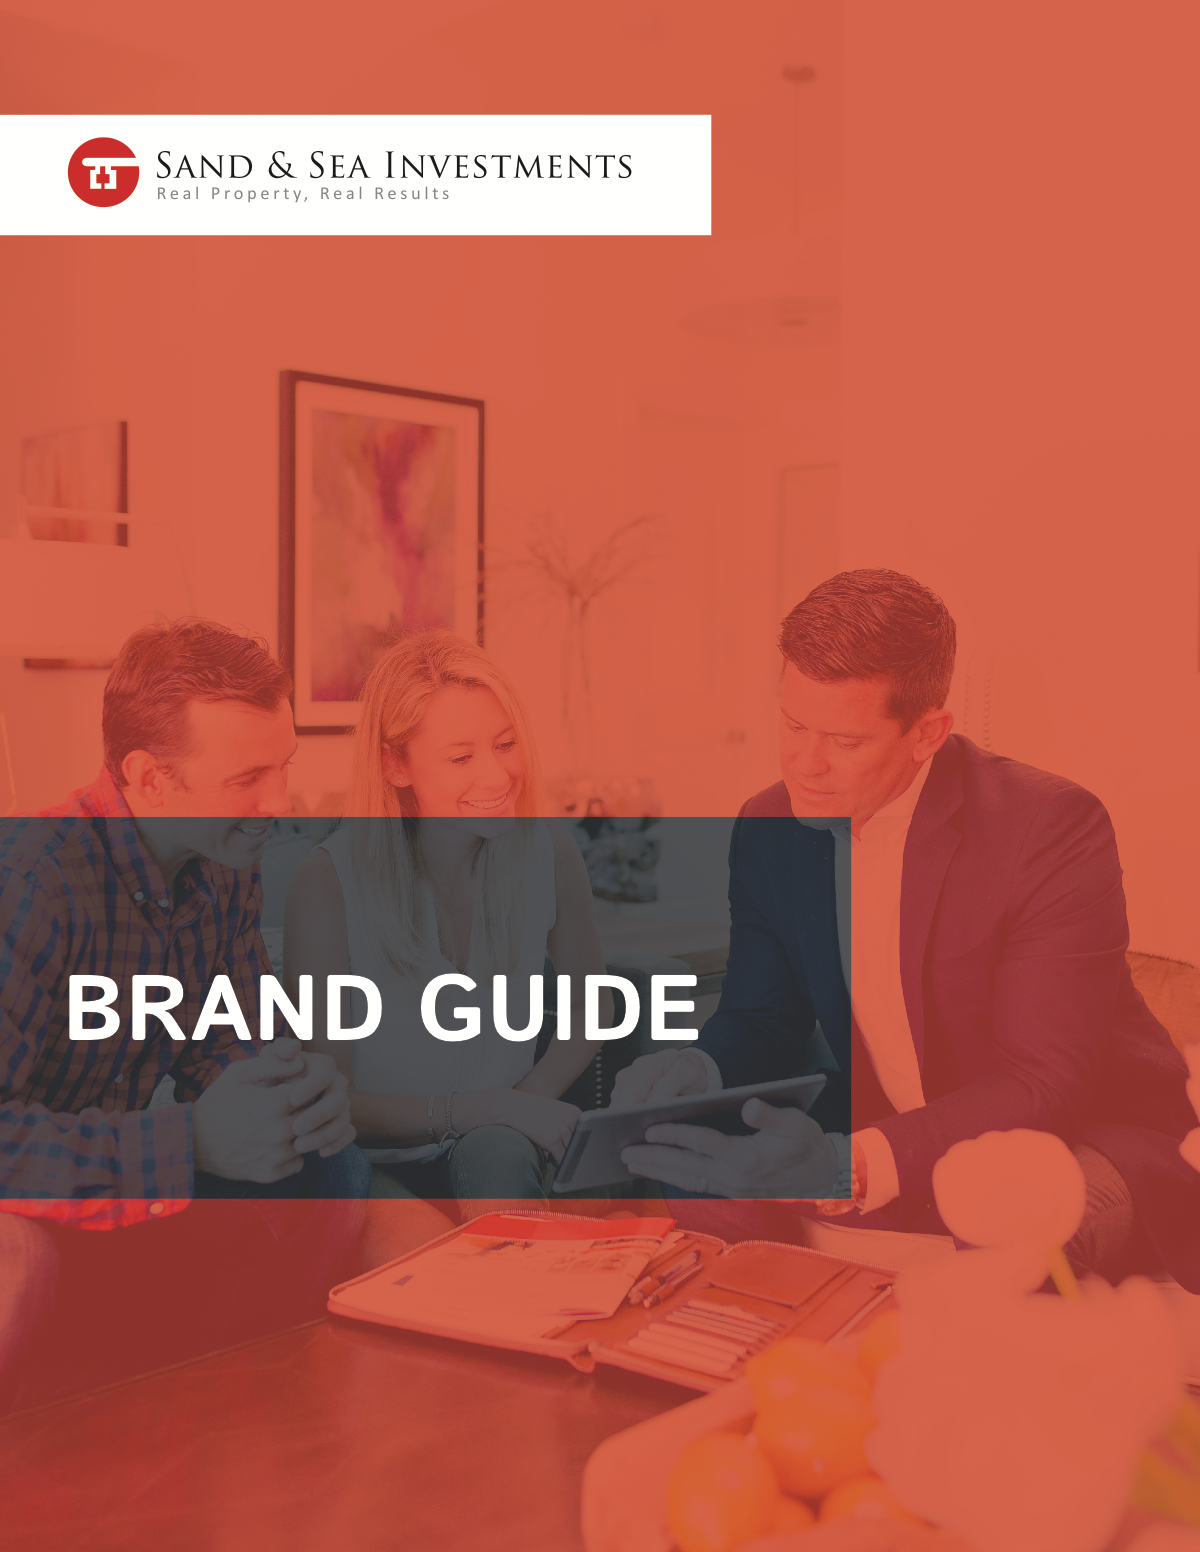 Single Page Brand Guide